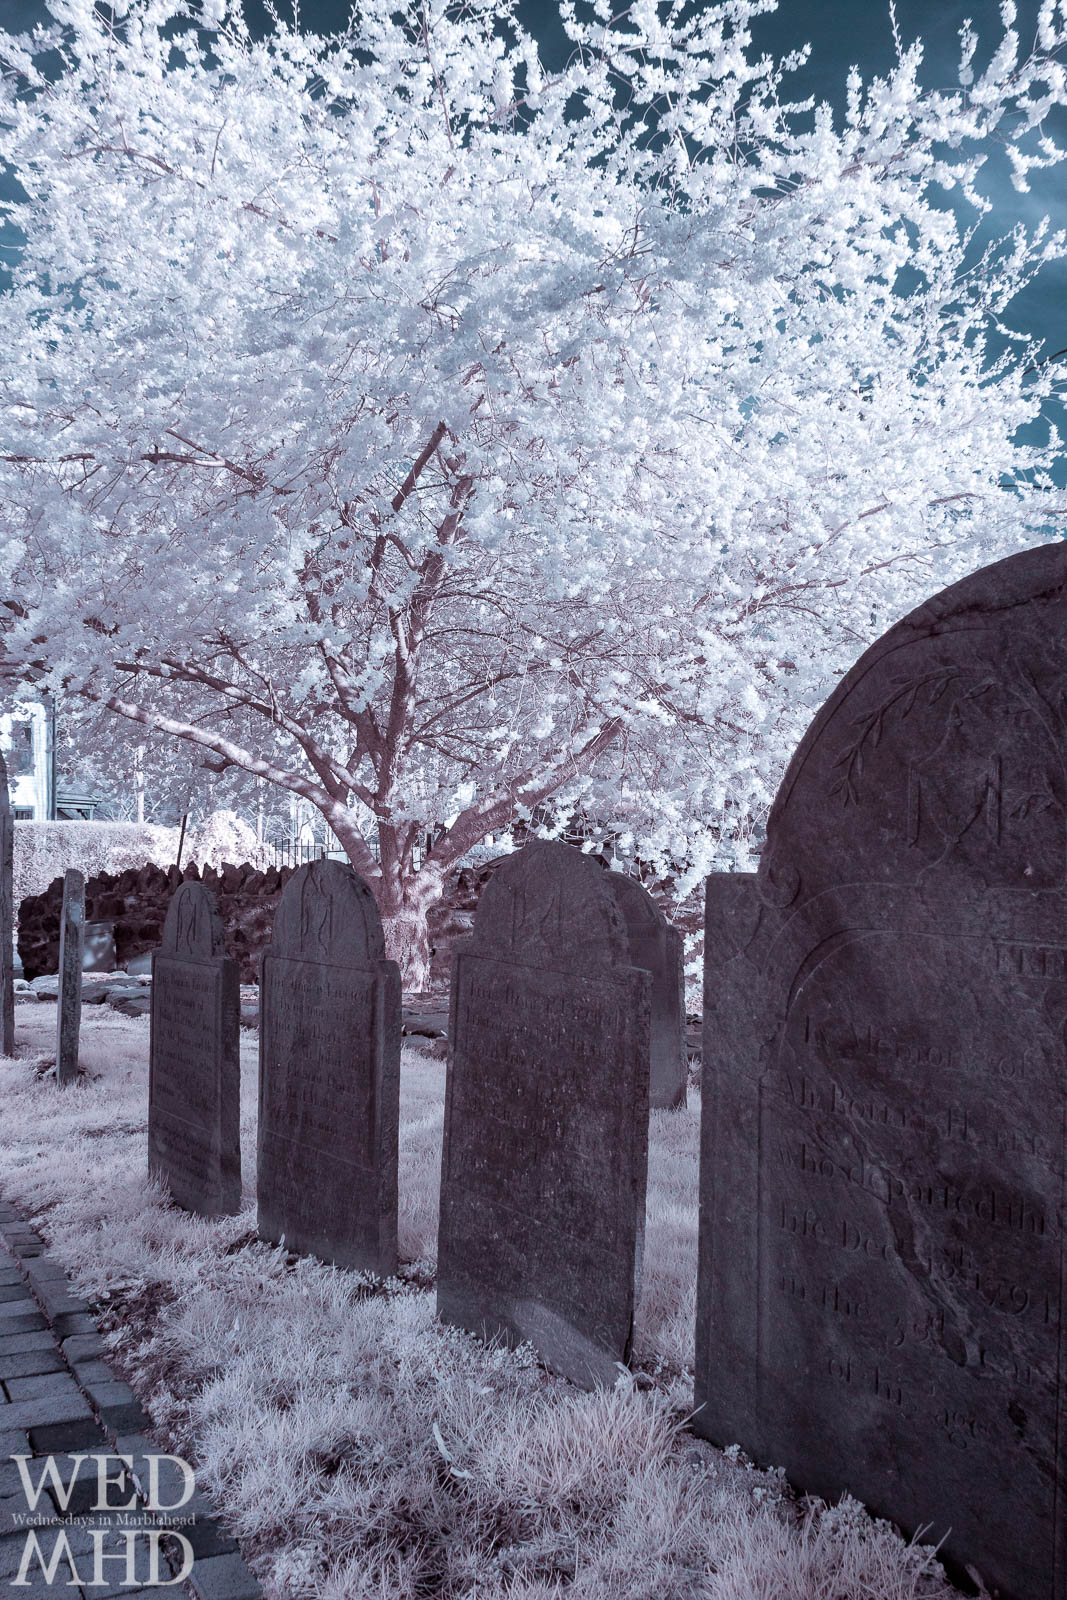 A view of cherry blossoms with an infrared camera contrasts the stark white flowers with dark gravestones